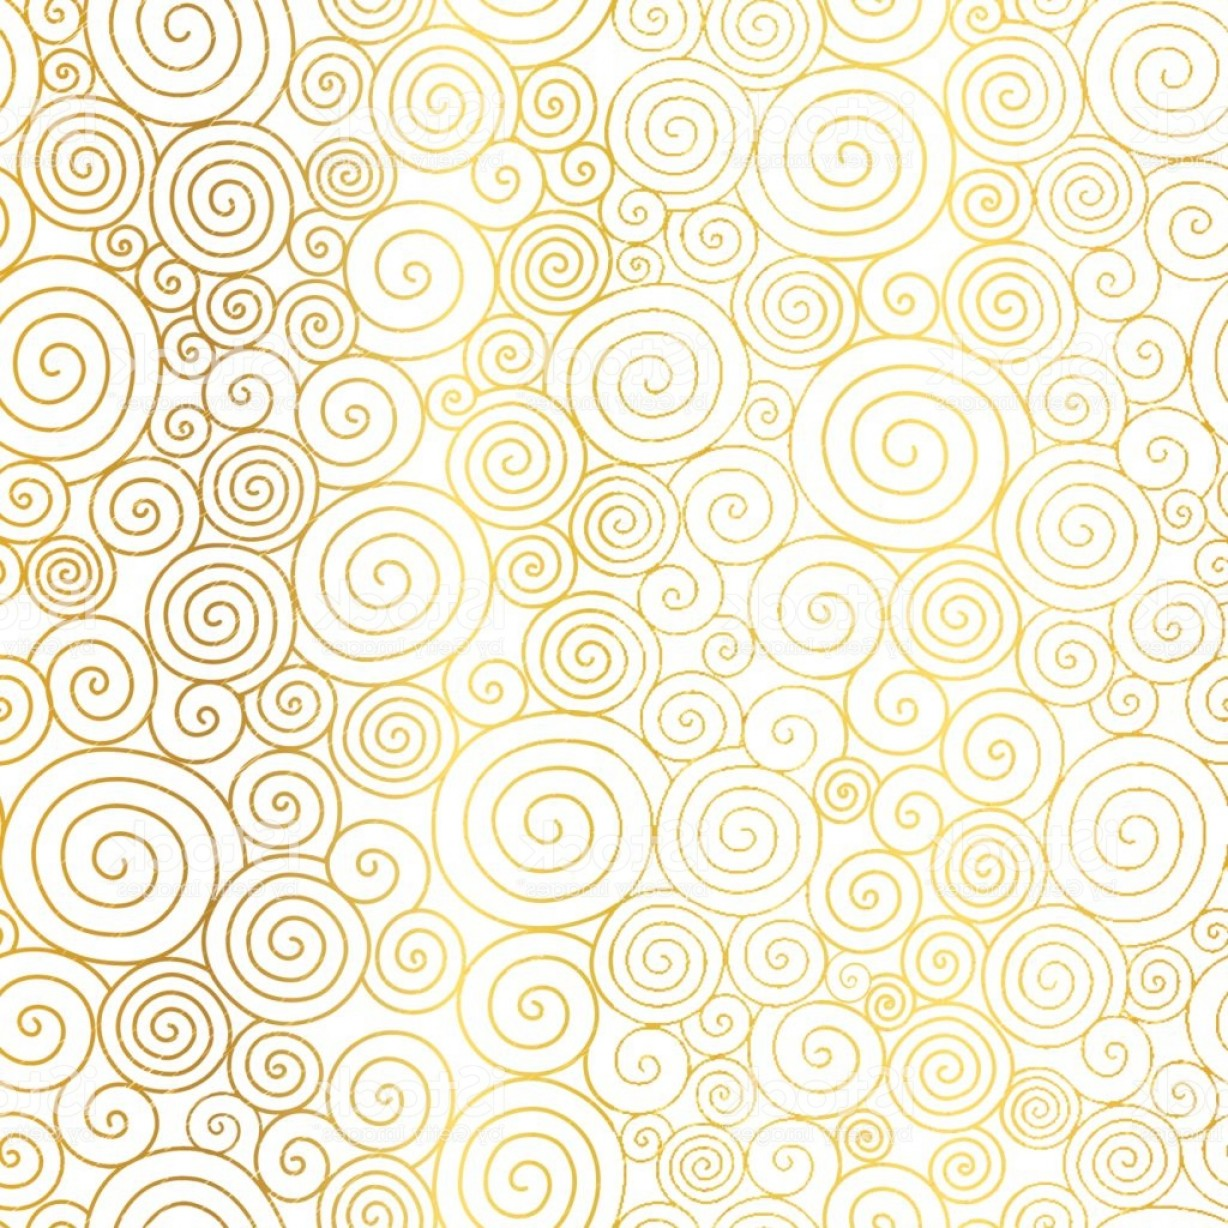 Gold Wedding Swirl Vector: Vector Golden White Abstract Swirls Seamless Pattern Background Great For Elegant Gm